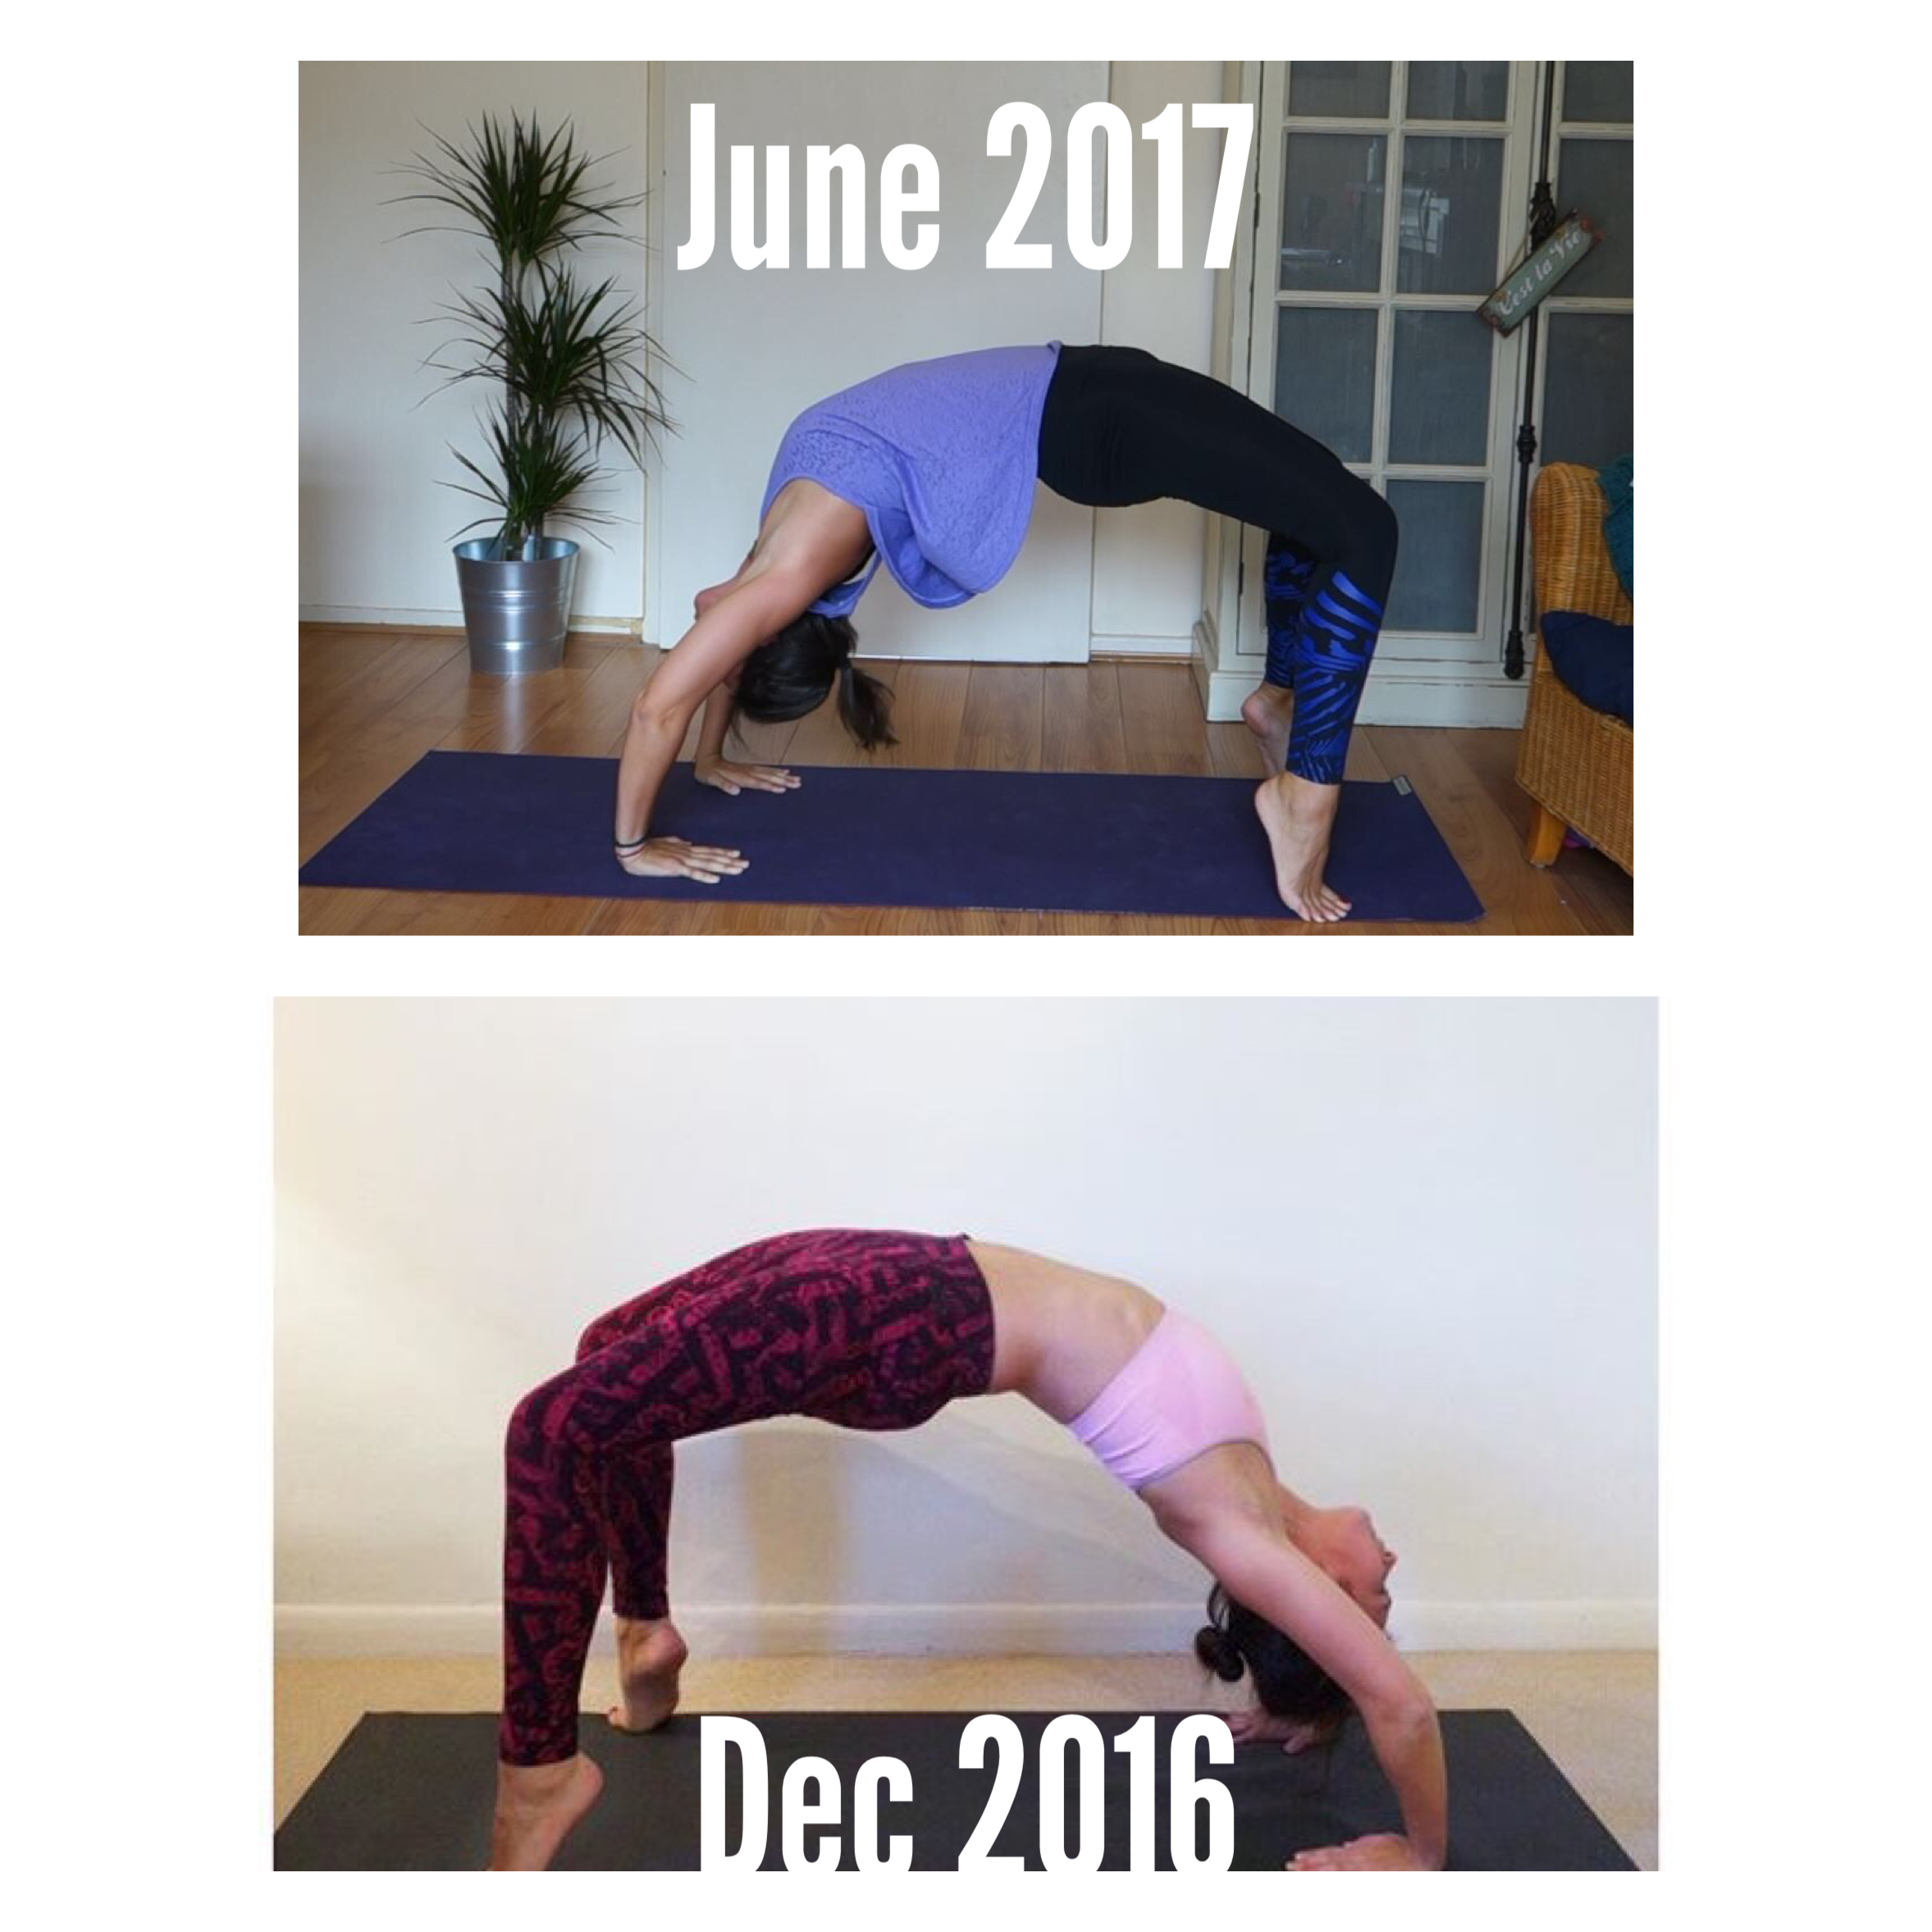 These photos are a year apart, there are some slight improvements in the physical form, but is that really what we're aiming for?